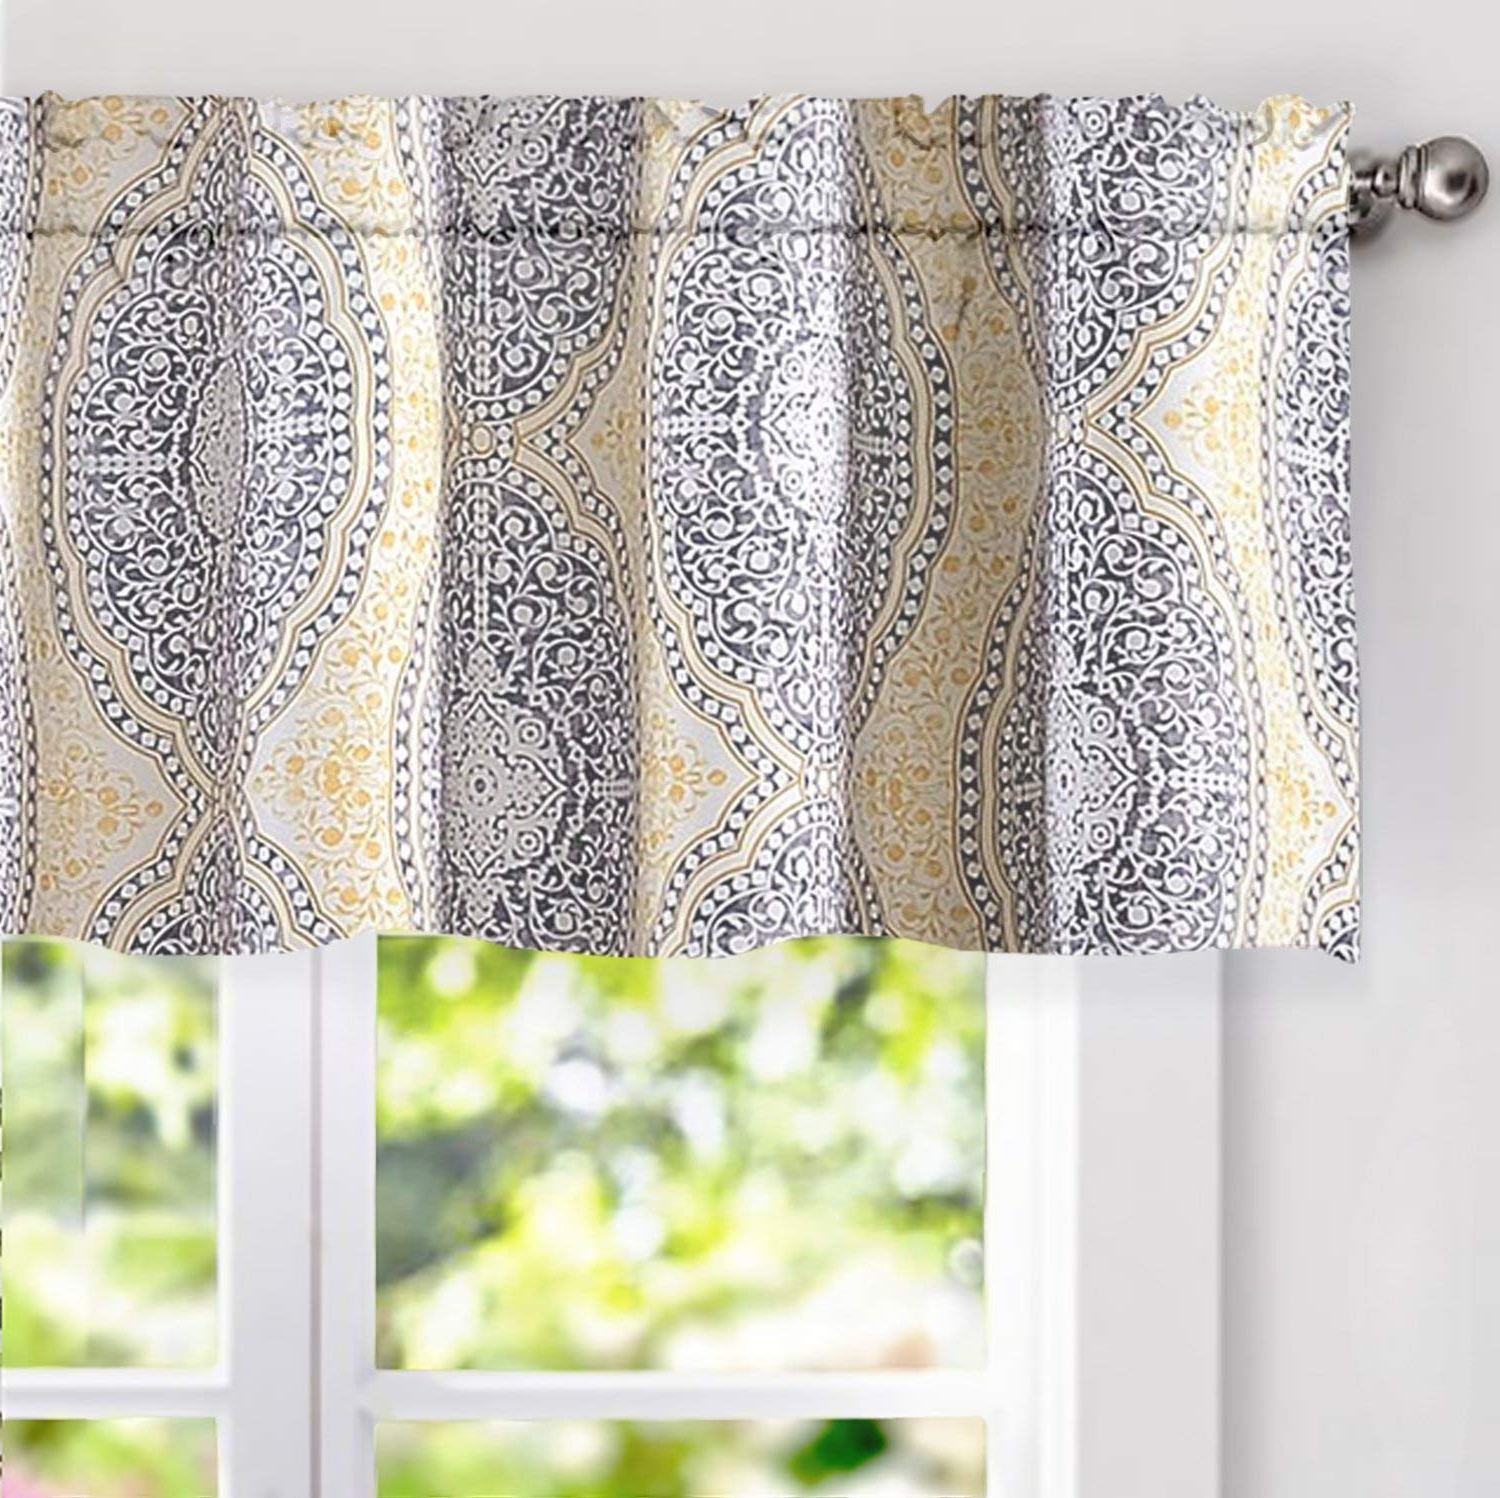 Recent Driftaway Adrianne Damask And Floral Pattern Window Curtain Valance 52 Inch 18 Inch Yellow And Gray Throughout Floral Pattern Window Valances (Gallery 14 of 20)